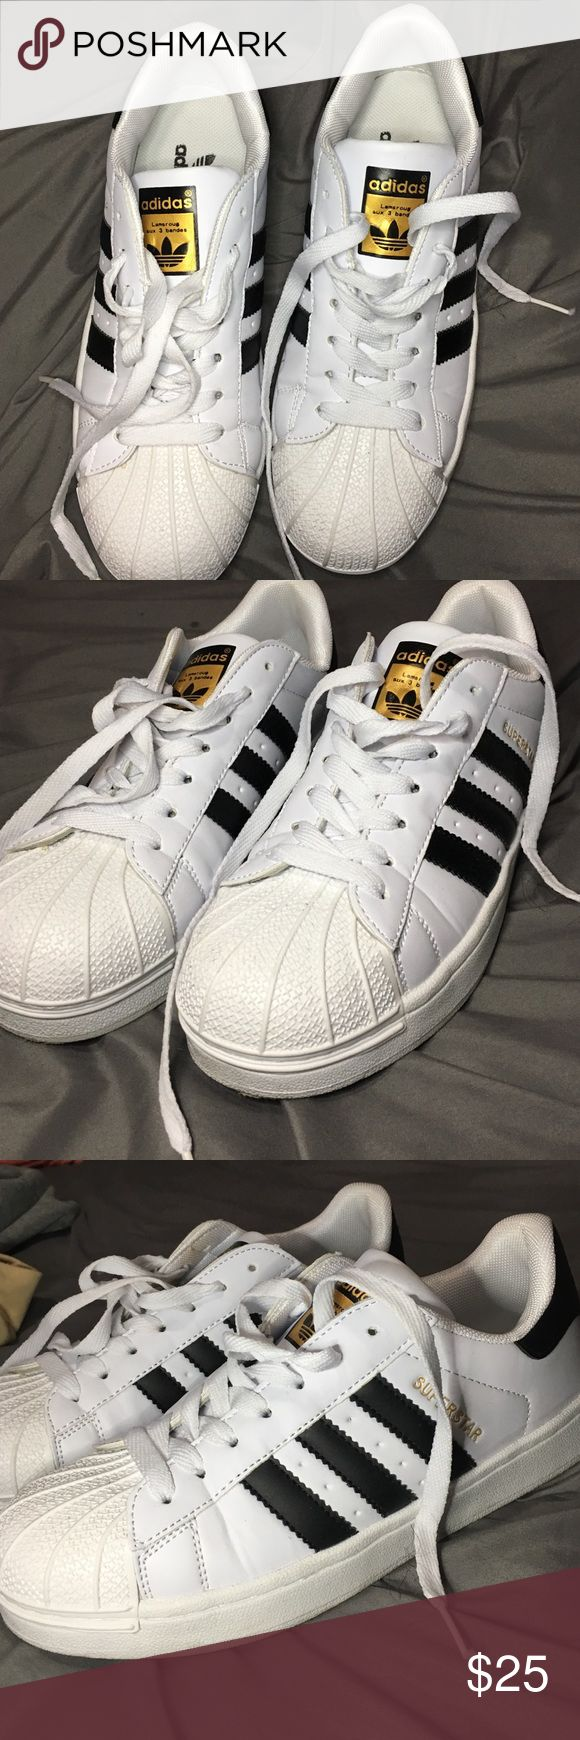 Black and White Superstar Black and white adidas superstar. Bought from ioffer. Probably non-authentic. Adidas Shoes Sneakers